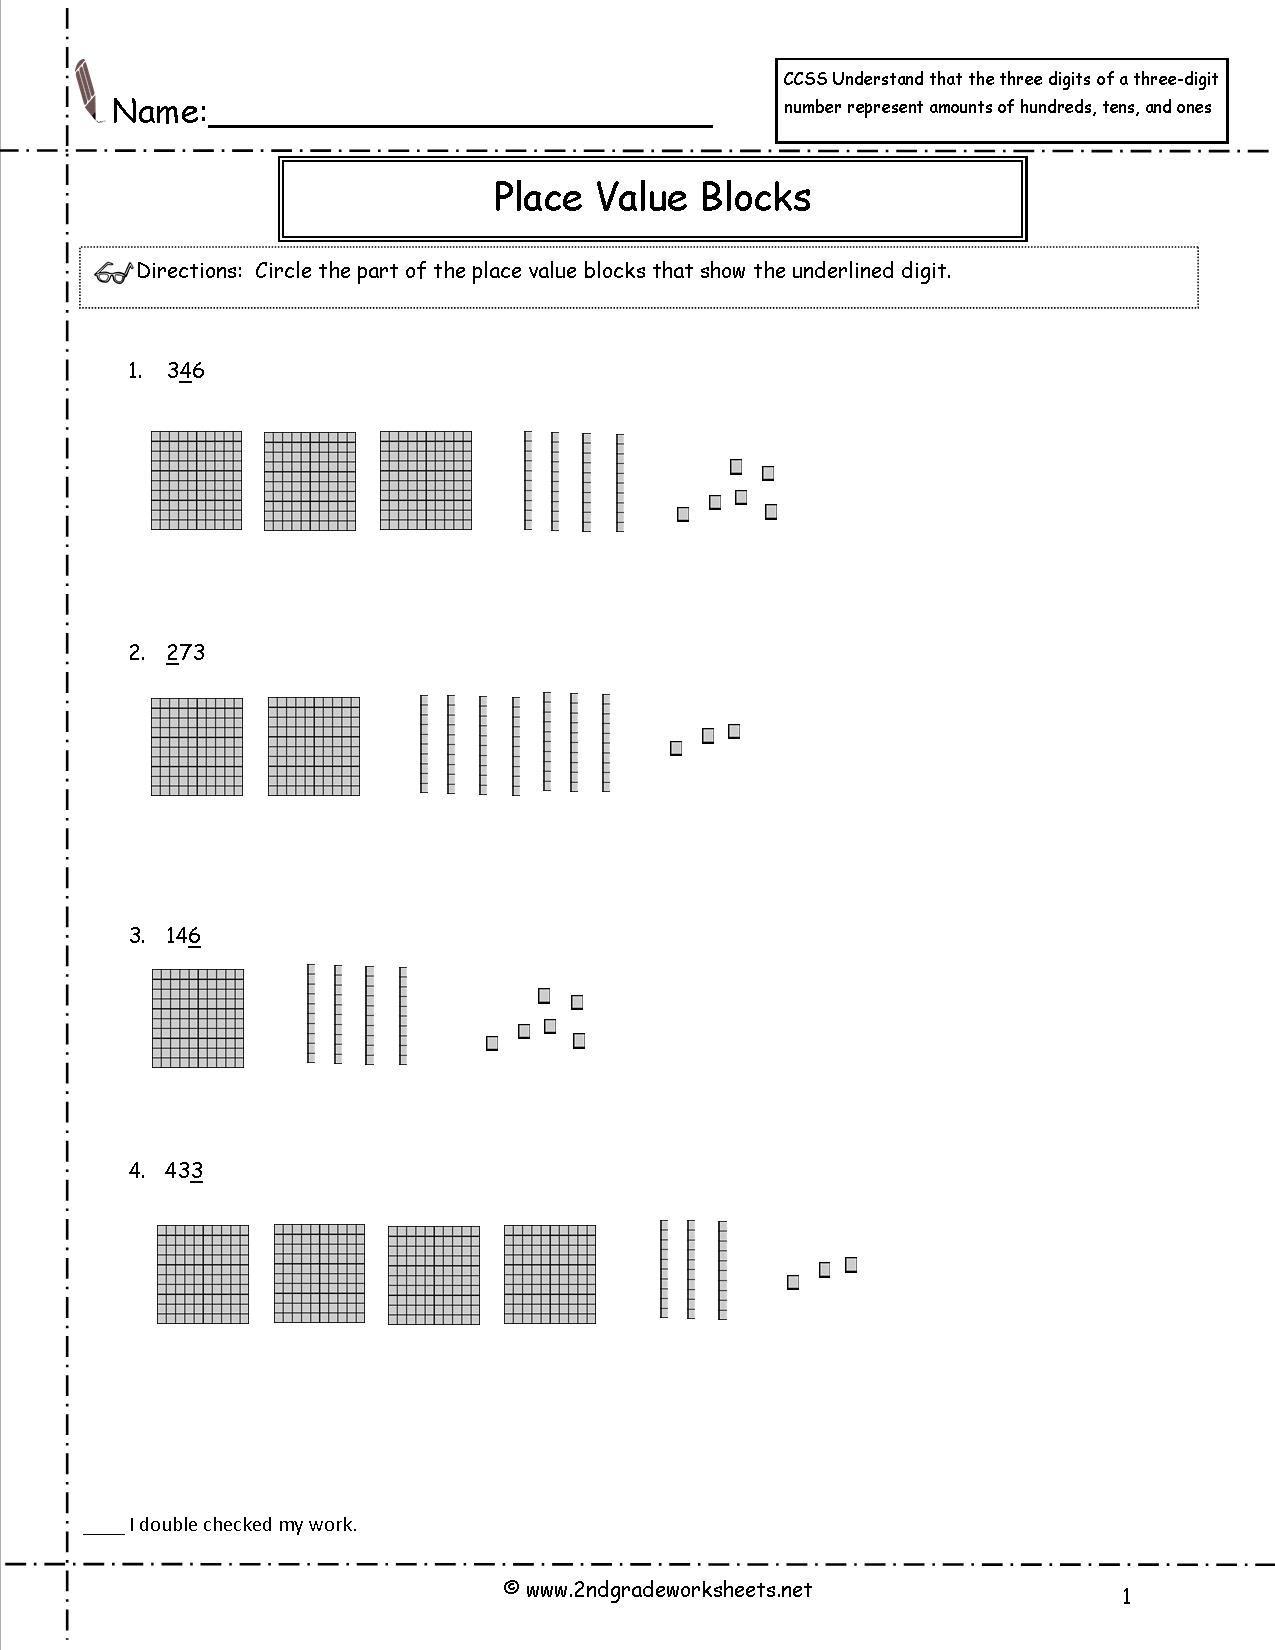 Ccss 2.nbt.1 Worksheets Place Value Worksheets. | Place Value Hundreds Tens Ones Worksheets Printable